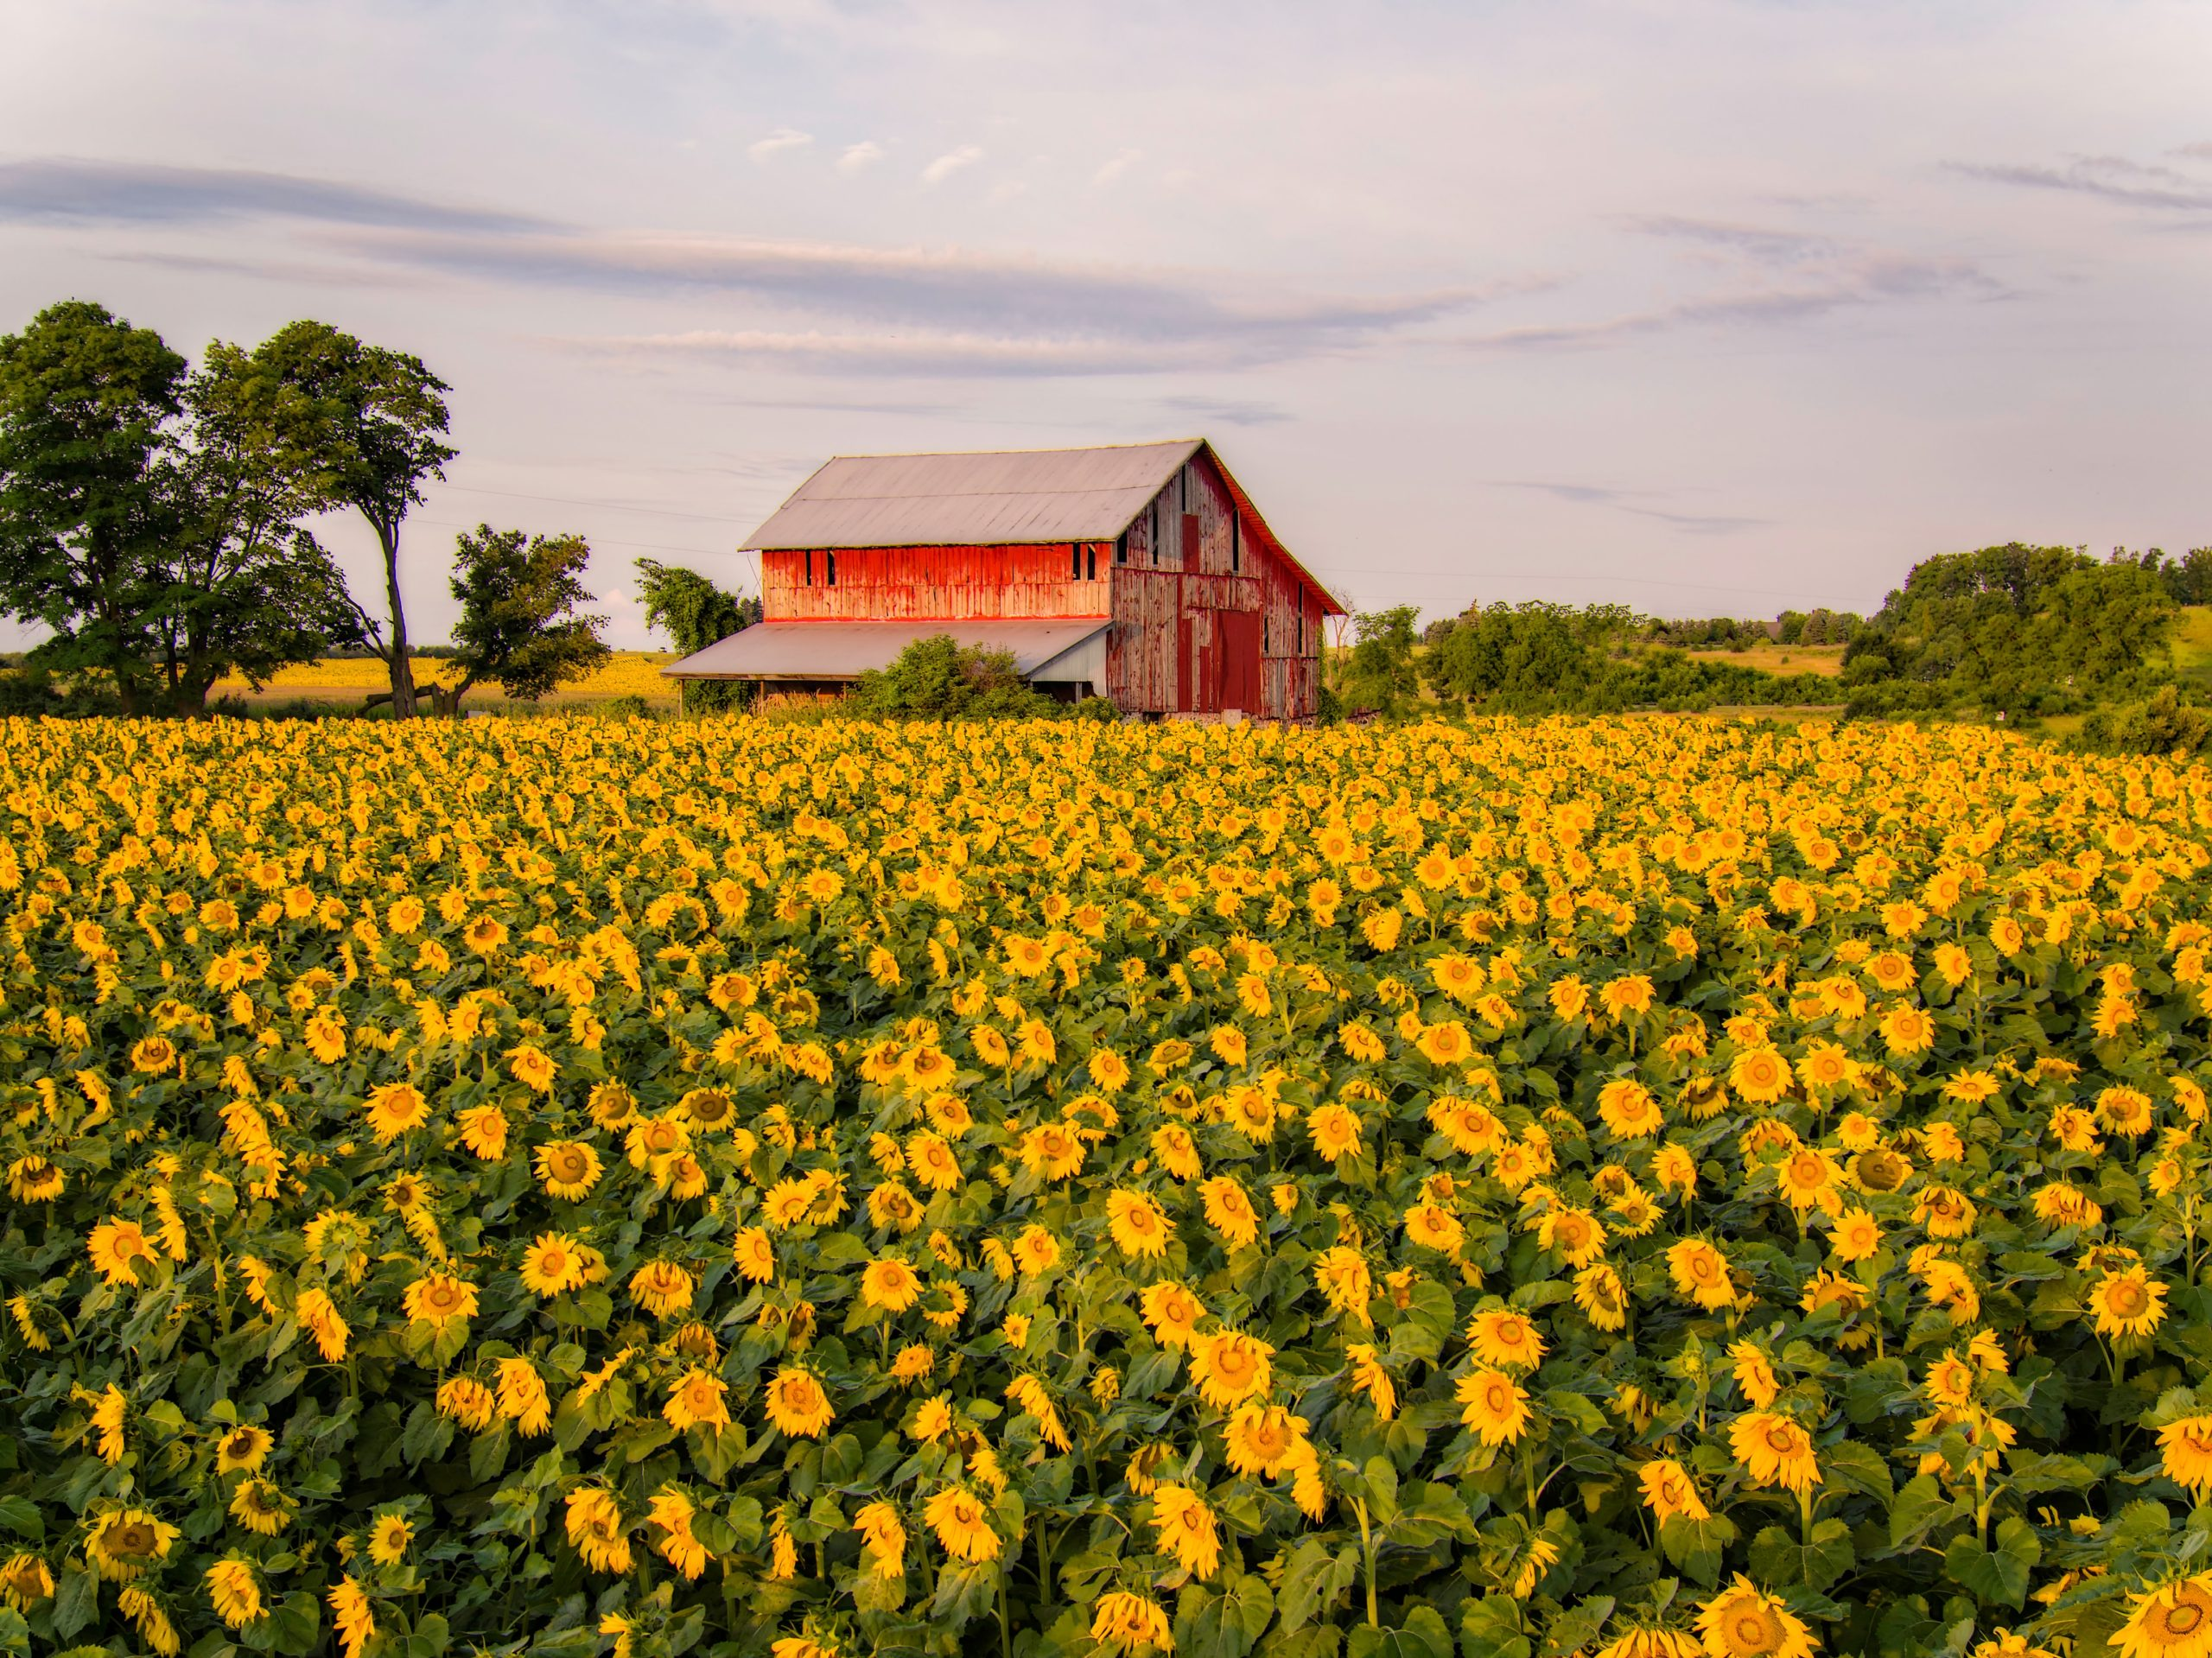 Beautiful Sunflowers in Front of a Red Barn - Farm Background Wallpaper Pictures